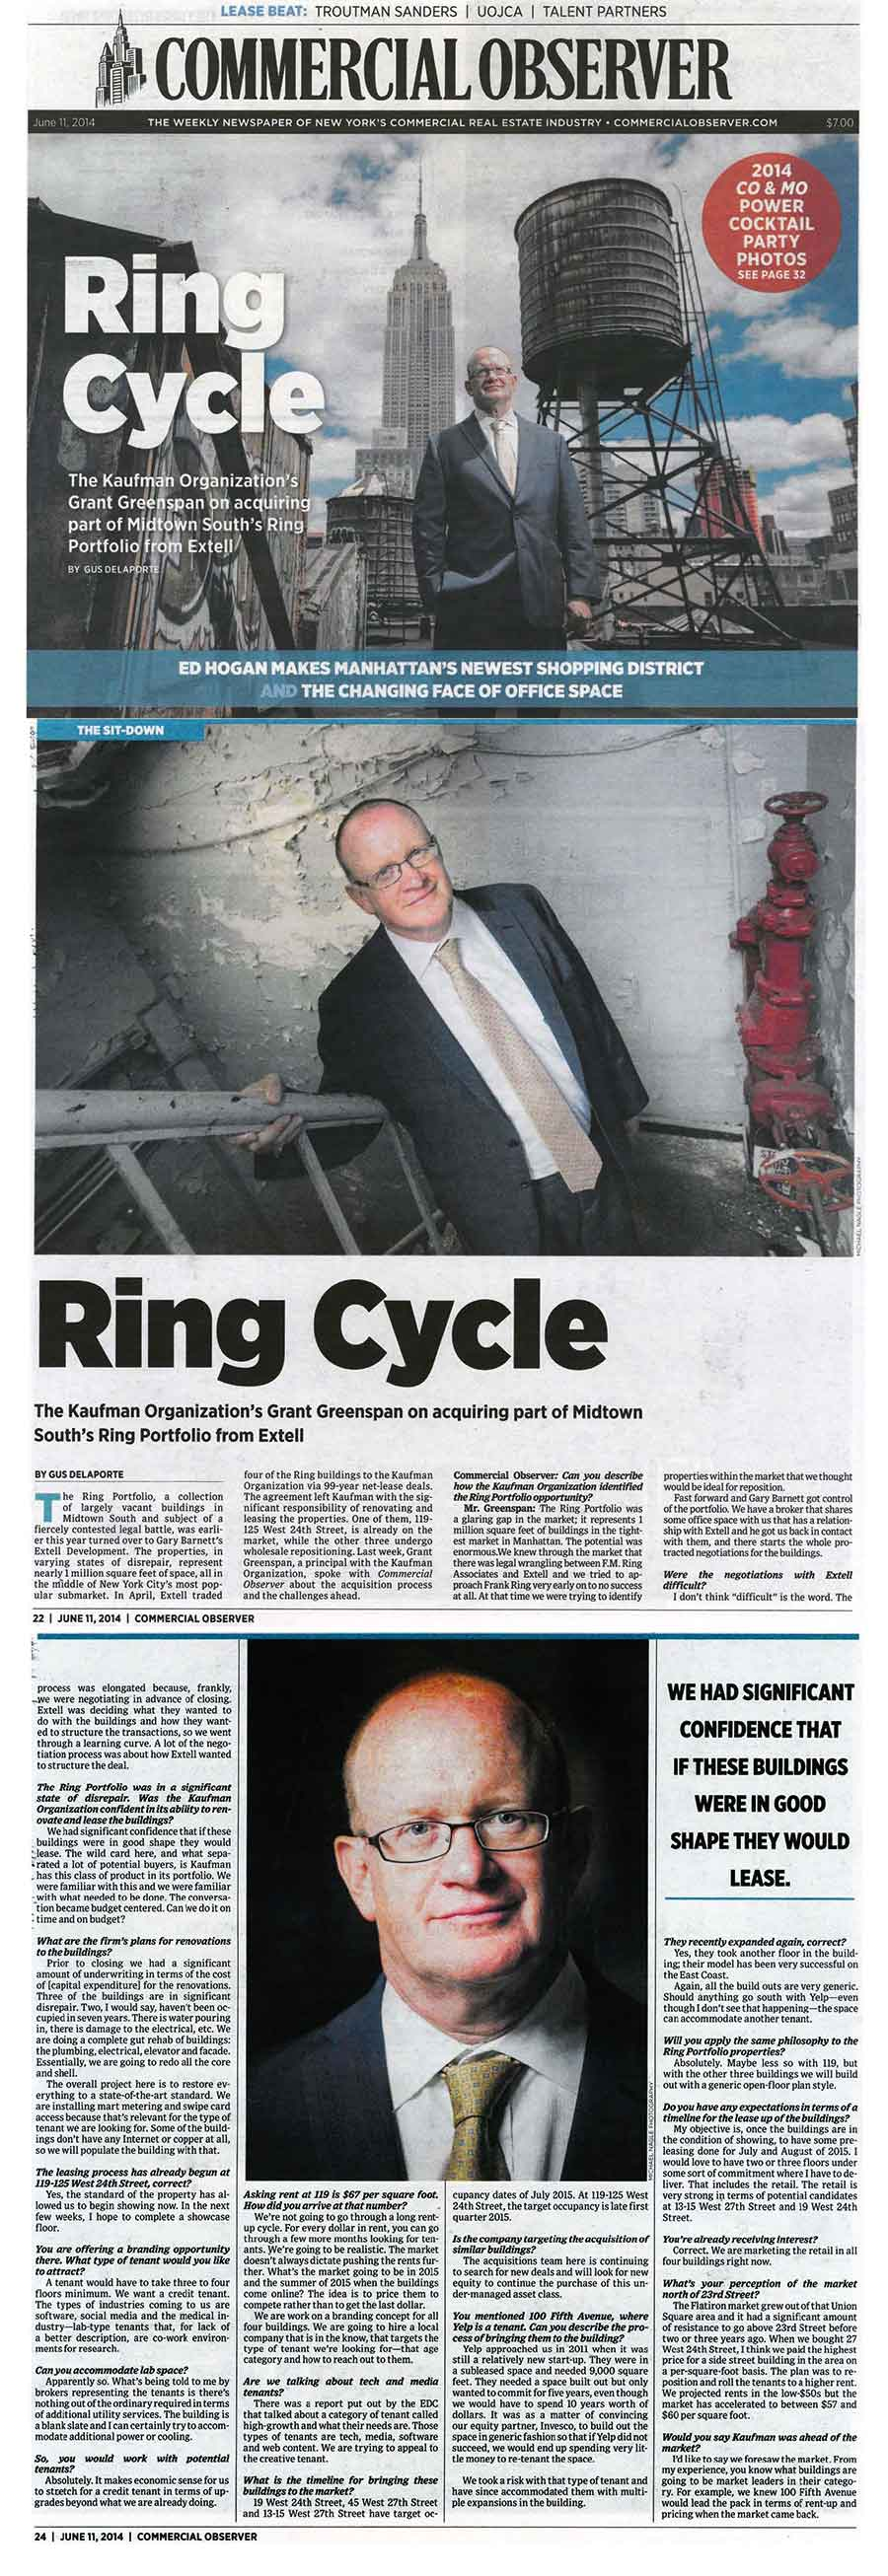 Commercial-Observer,-Ring-Cycle,-6.11.14